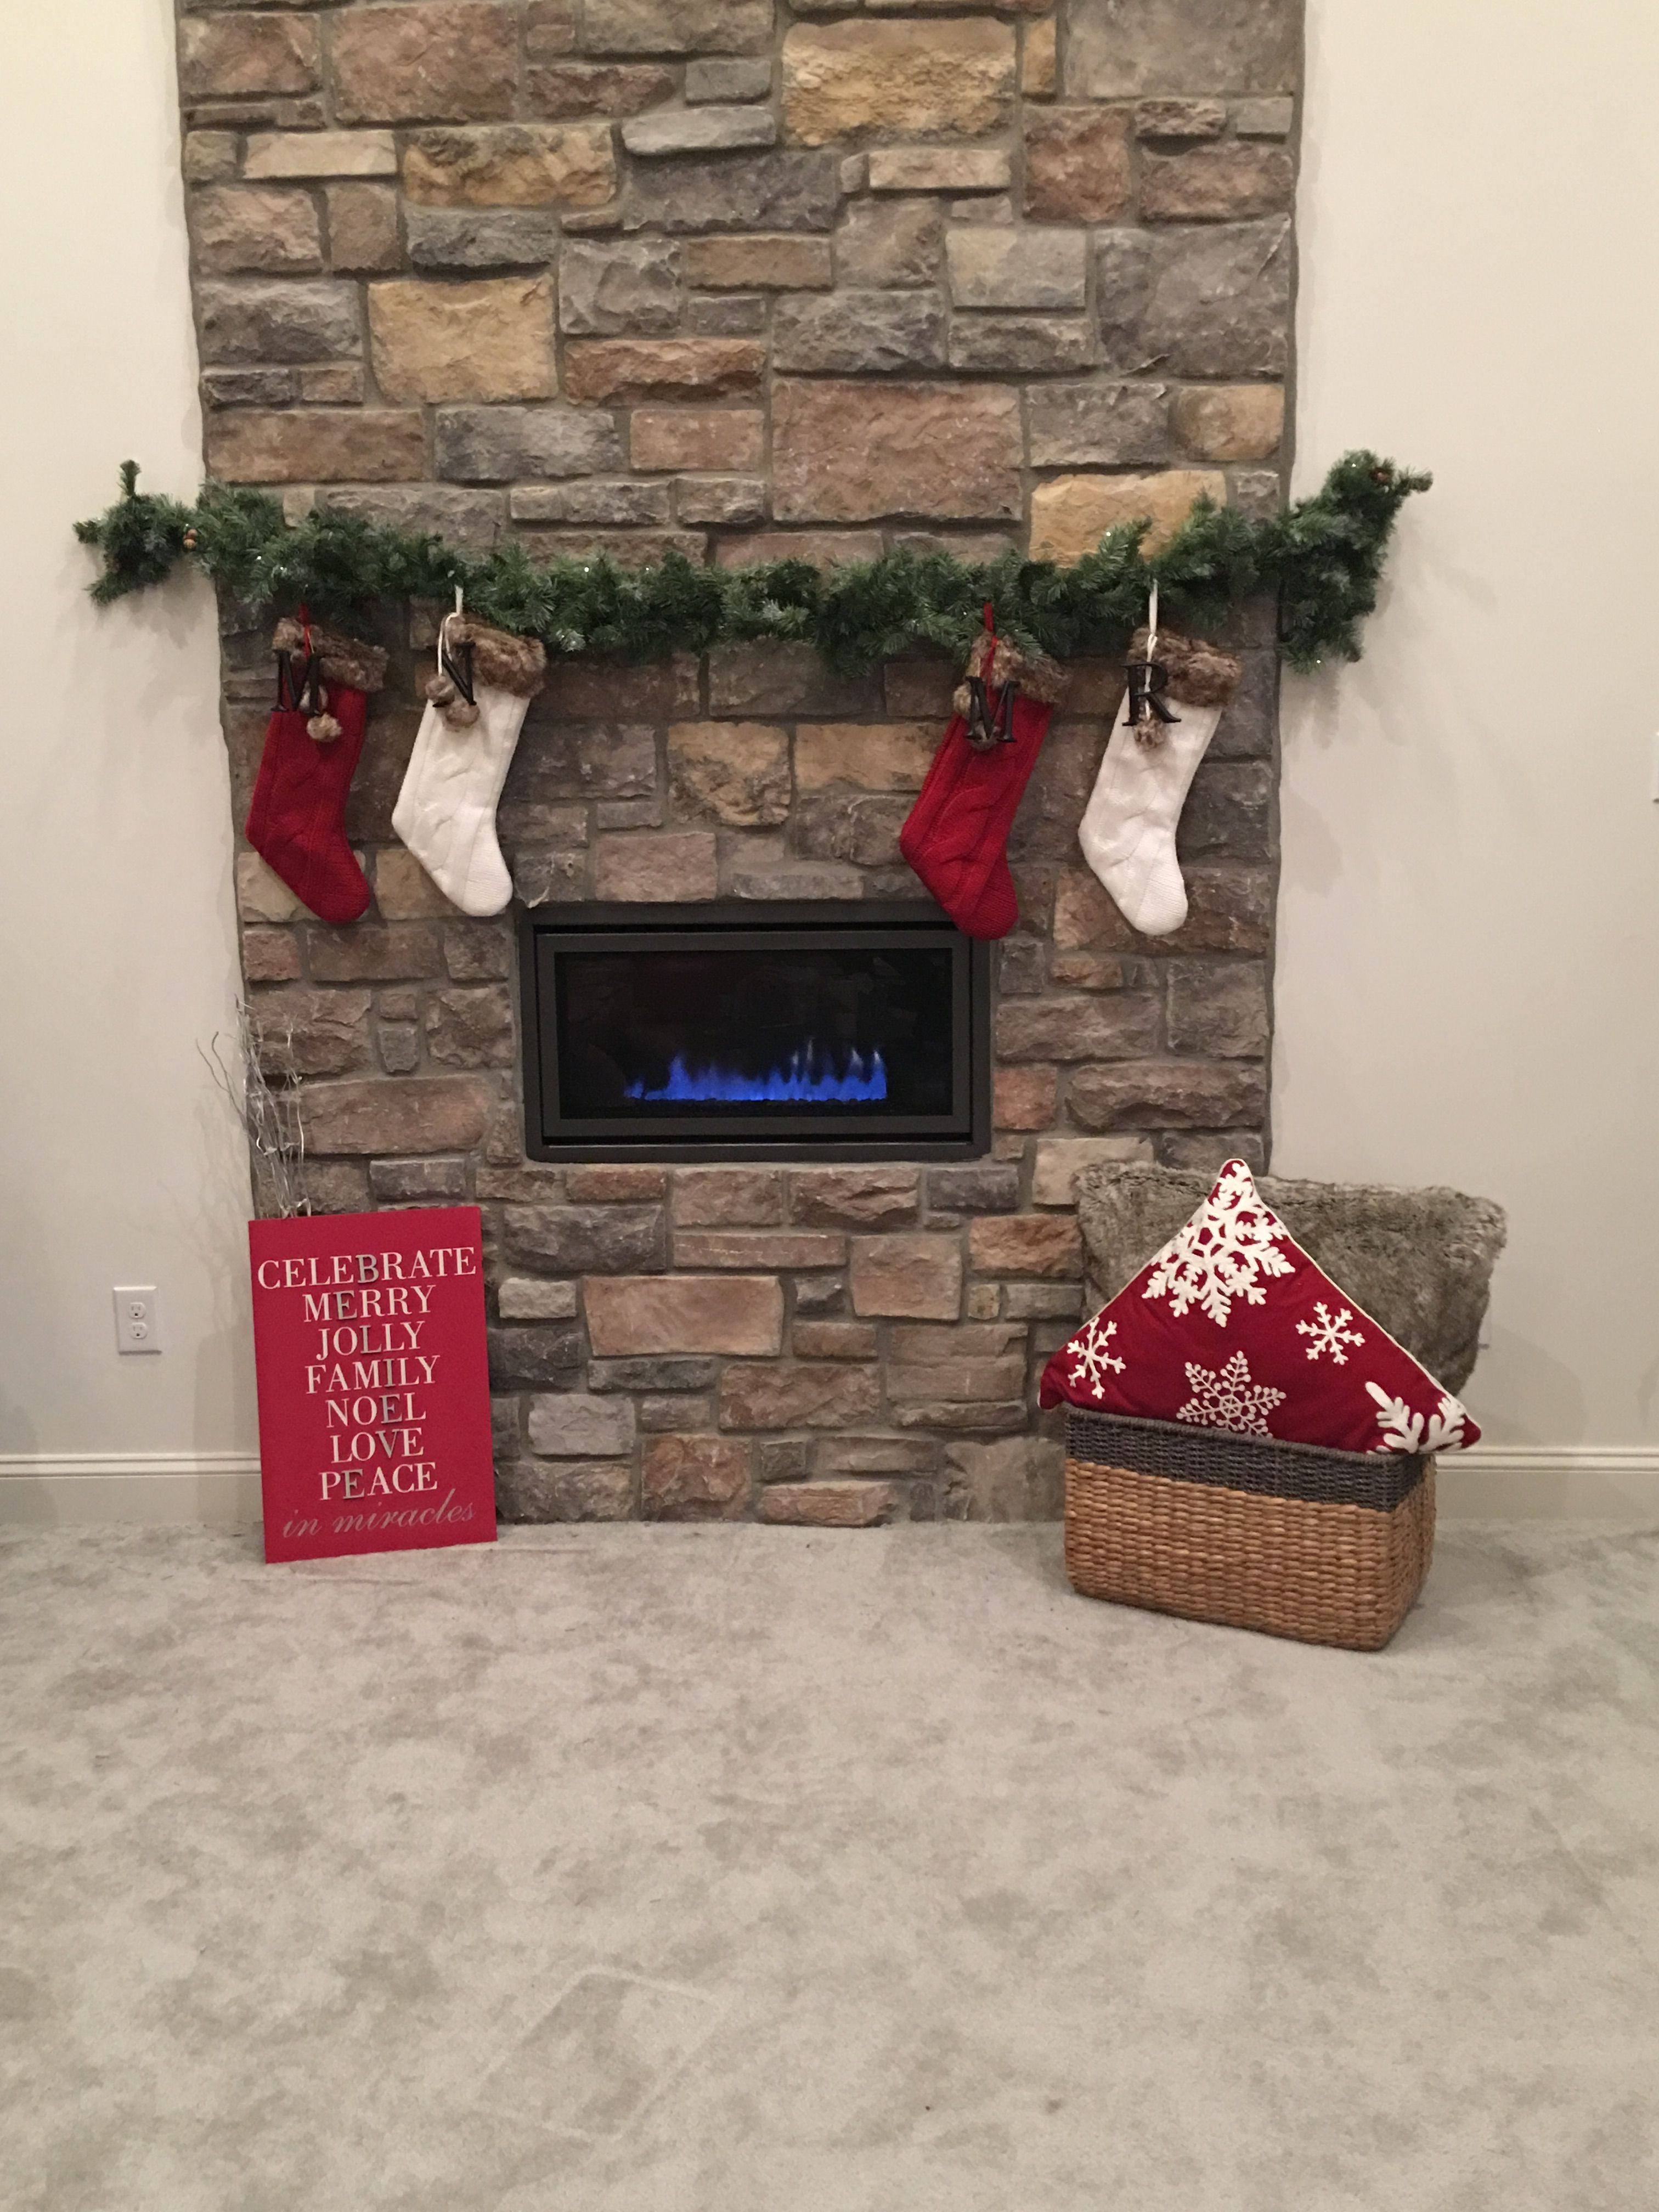 Creative Way To Hang Christmas Stockings Over A Modern Fireplace Without A Mantle Use A Hanging Christmas Stockings Christmas Fireplace Christmas Mantle Decor